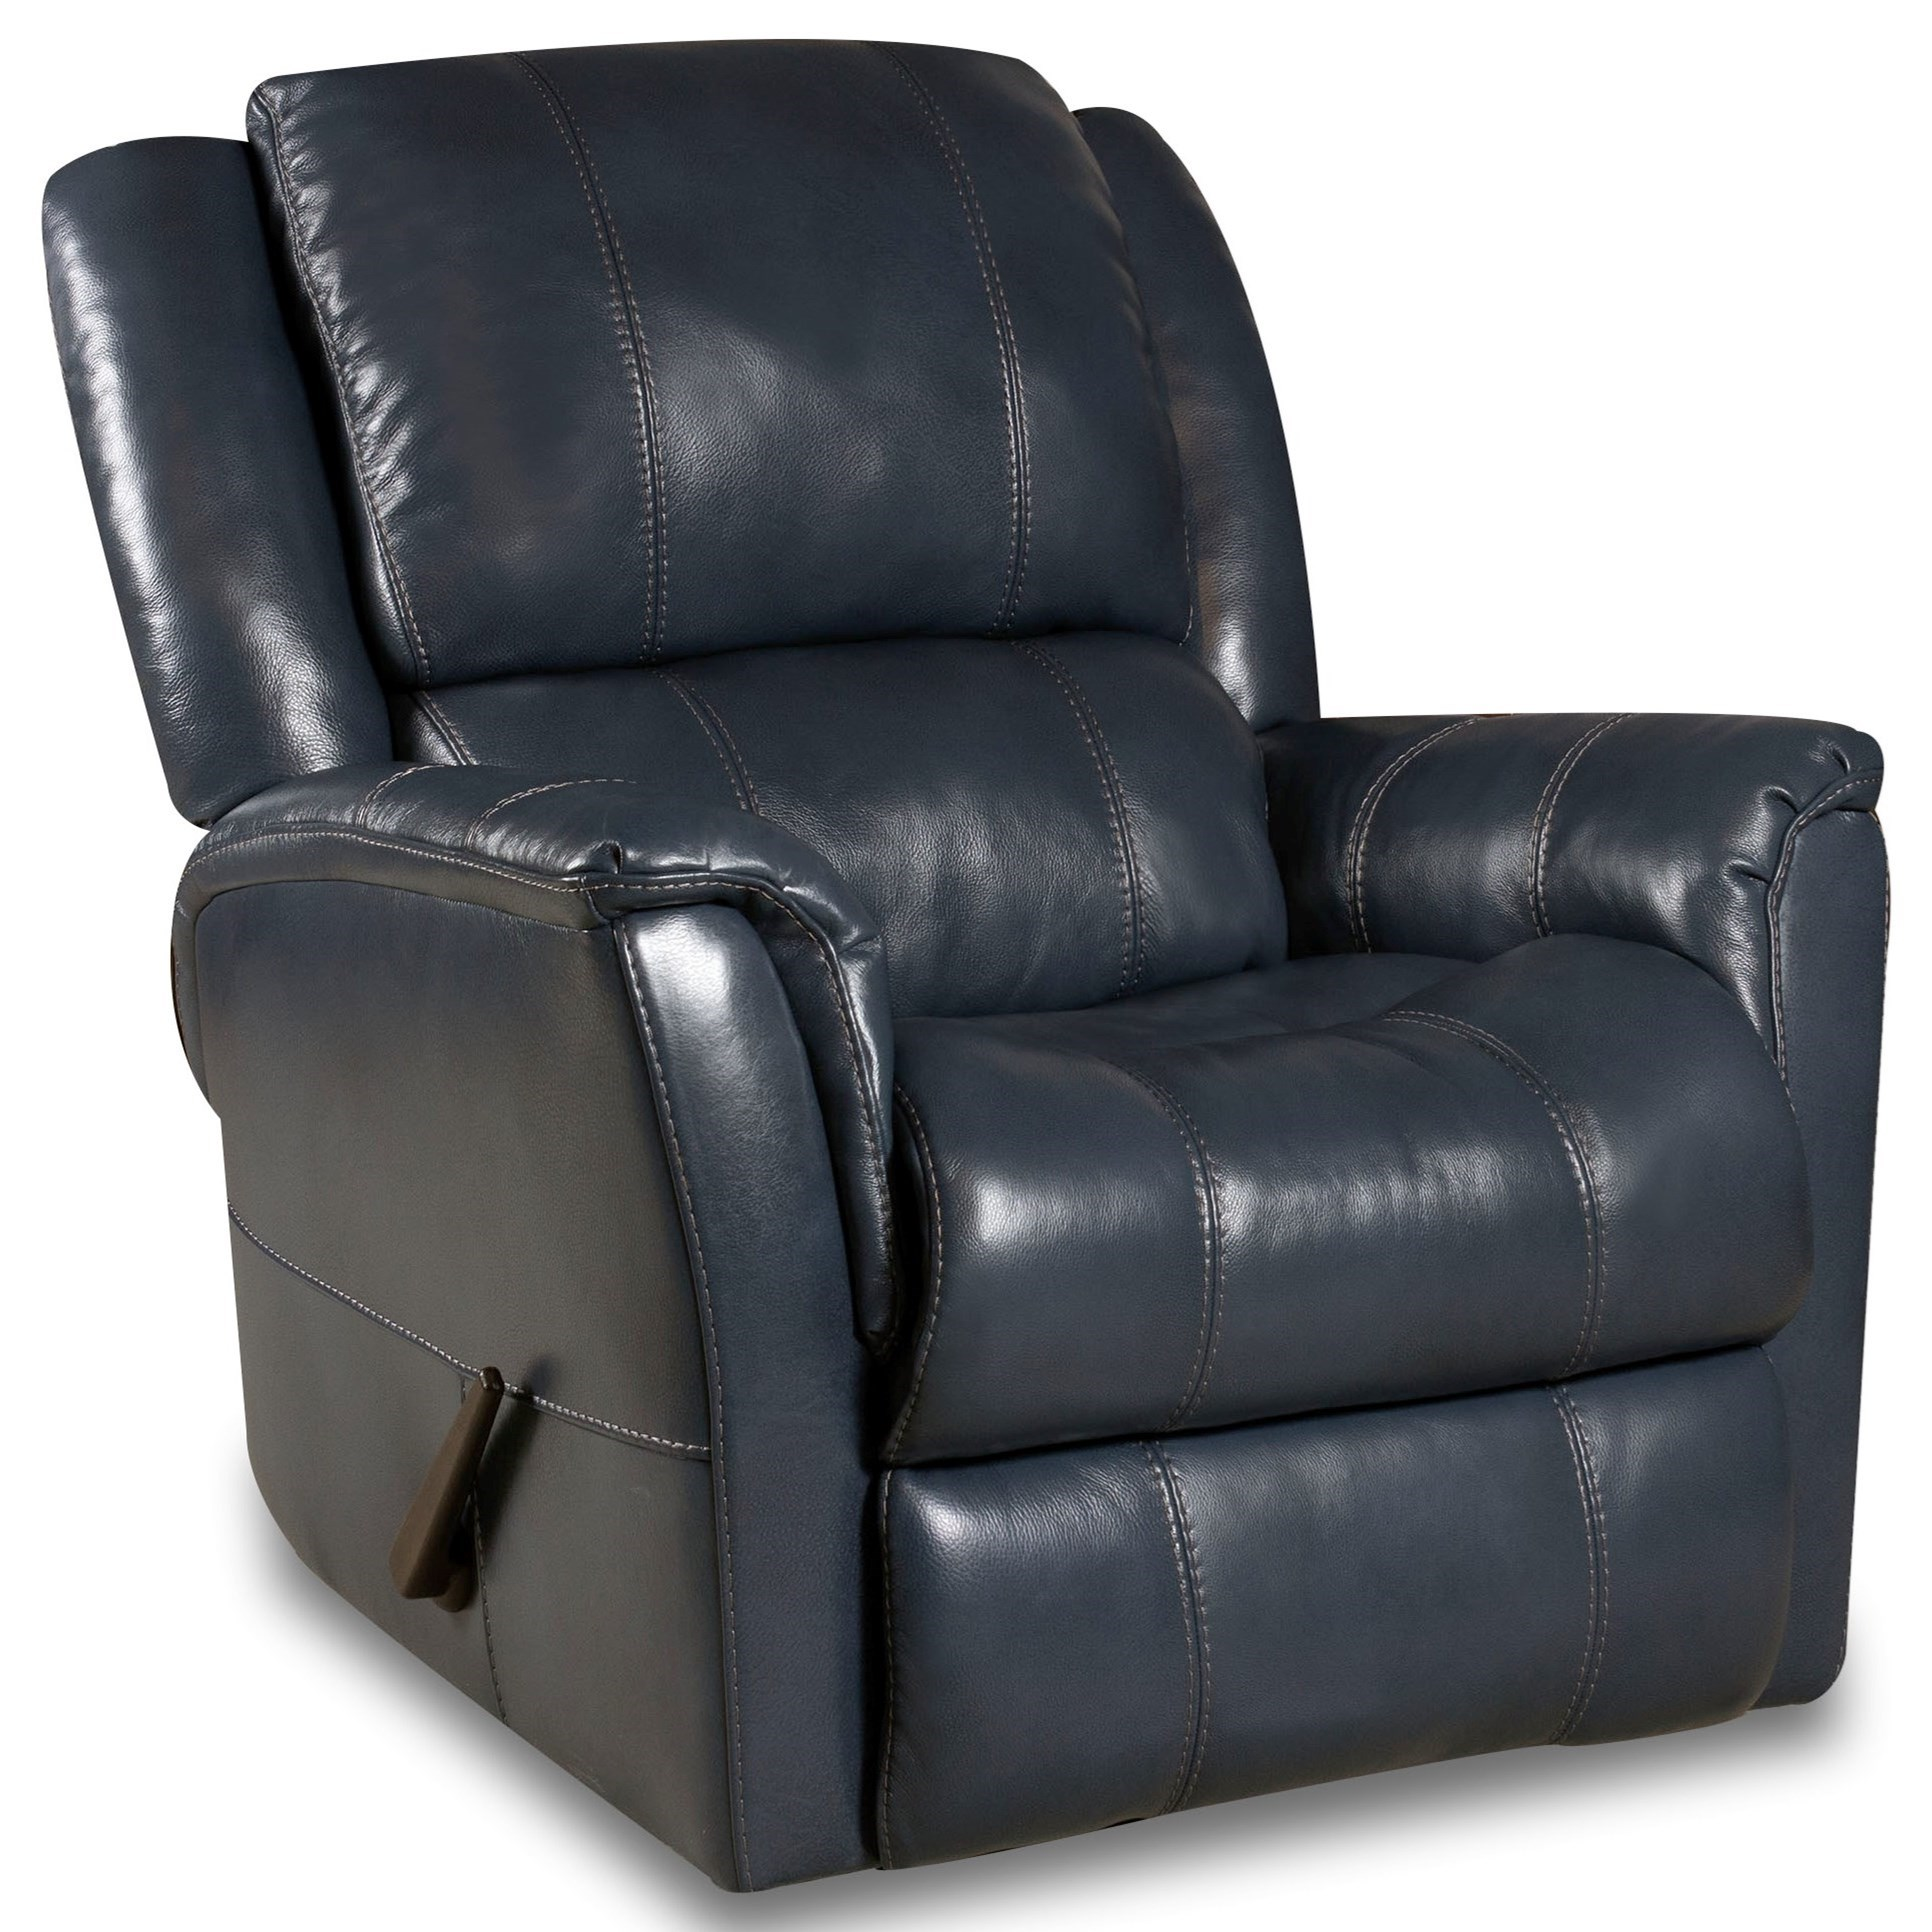 Mercury Swivel Glider Recliner by HomeStretch at Darvin Furniture